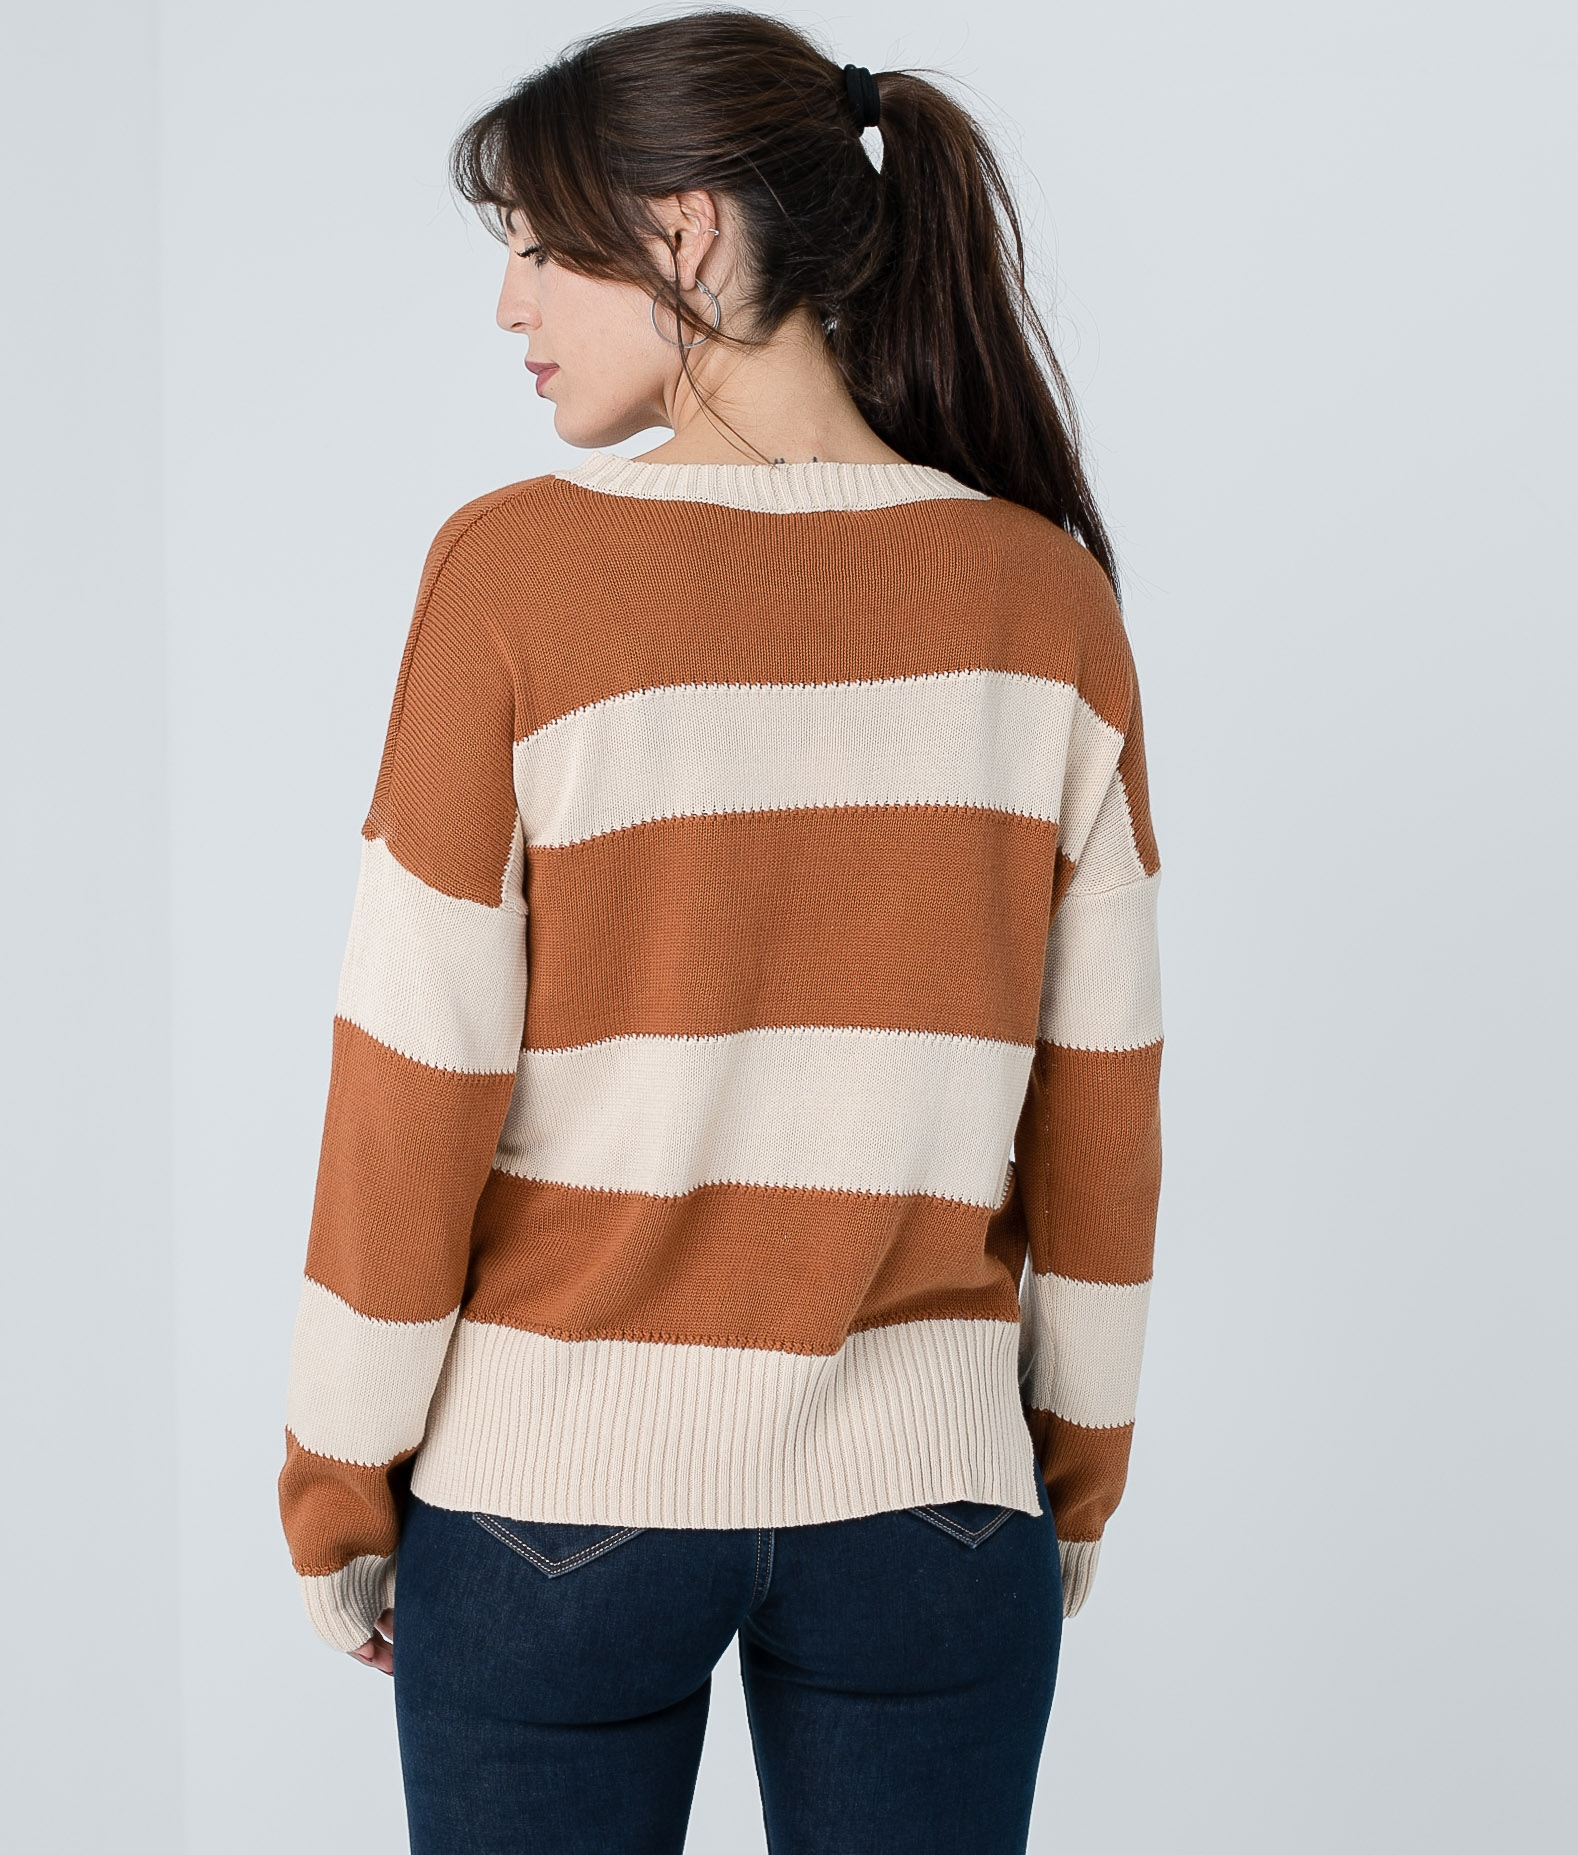 LEDA SWEATER - CAMEL